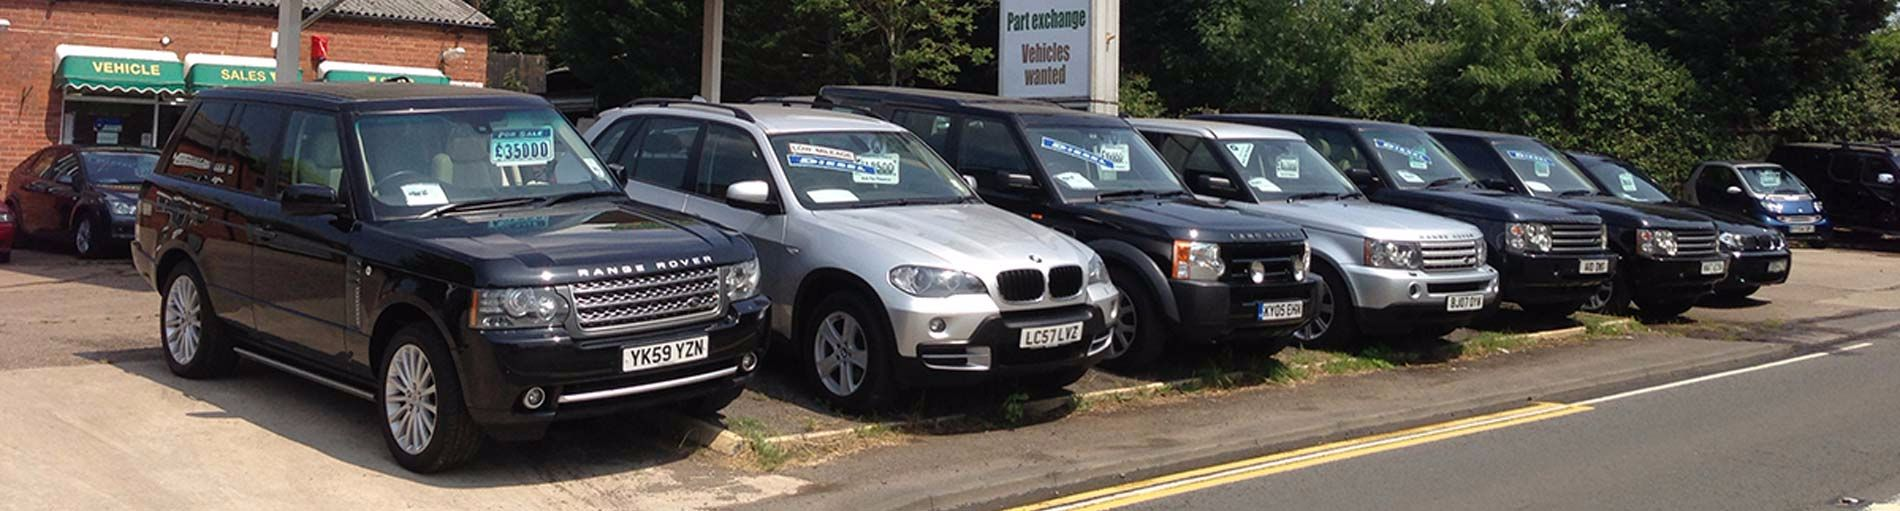 CHURCHILL 4X4 - USED CARS IN HANBURY, WORCESTERSHIRE